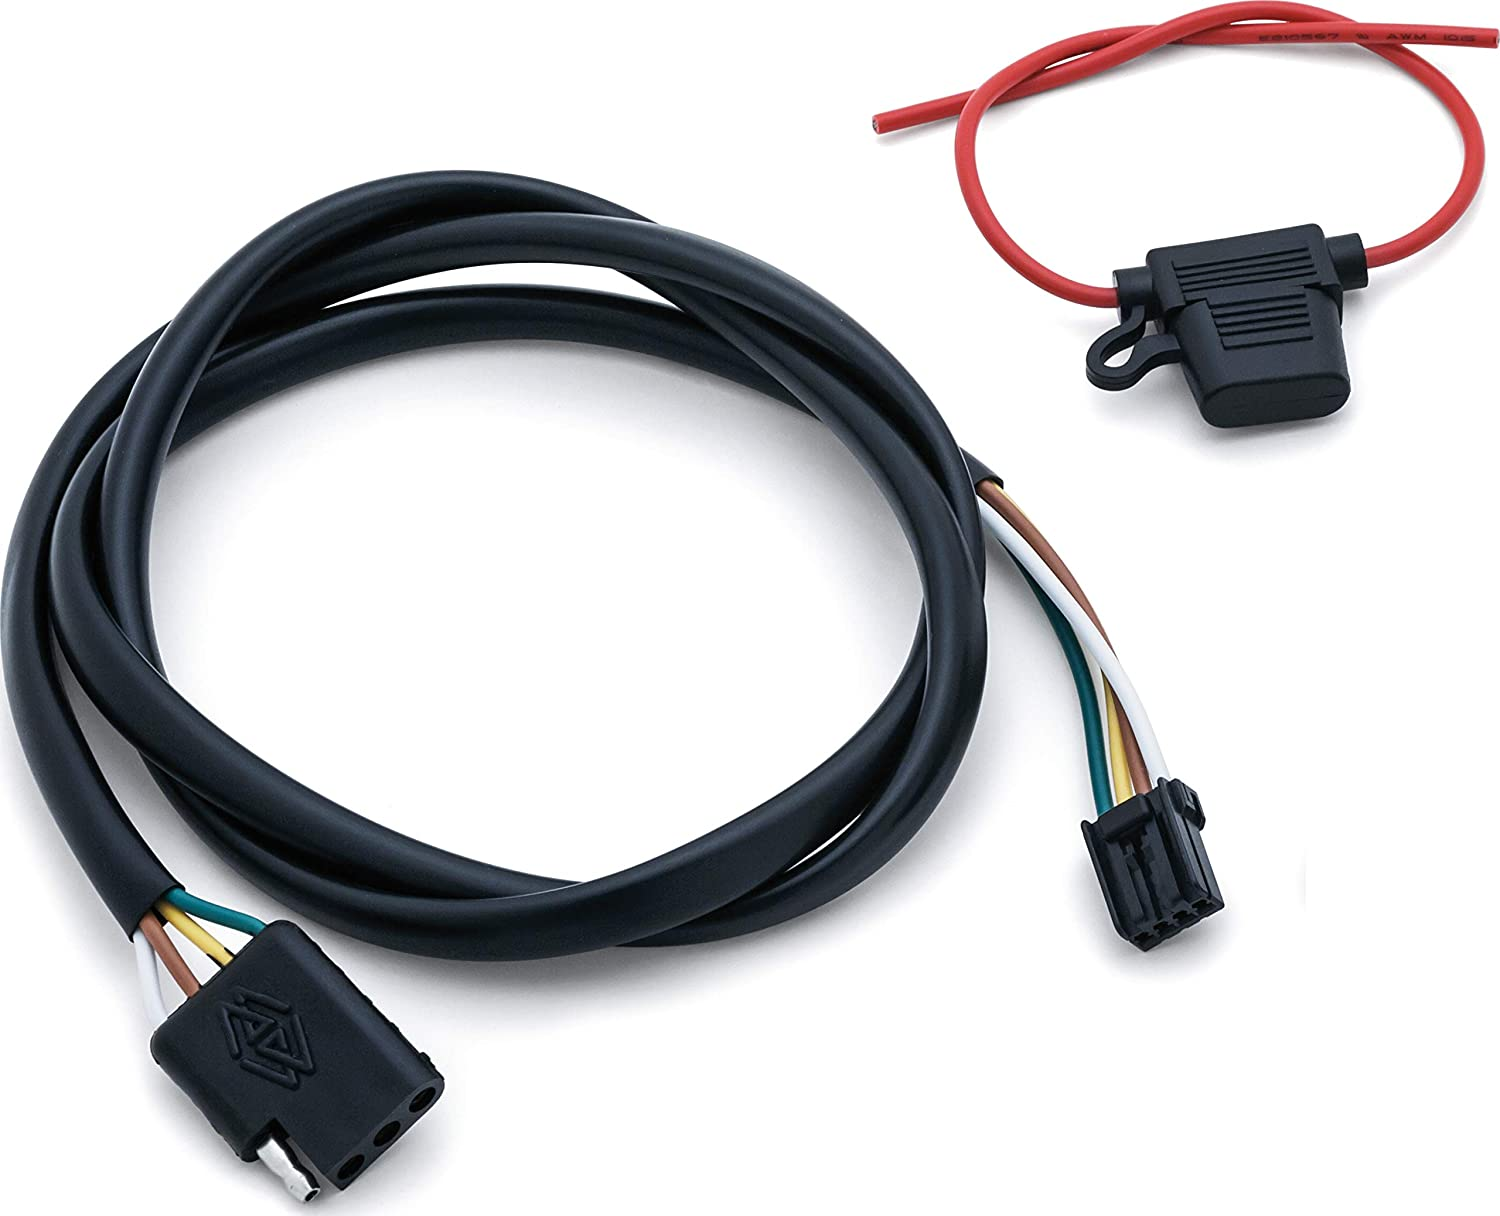 Kuryakyn 2596 Factory outlet Motorcycle Accessory: Plug Play Wiring Free shipping anywhere in the nation Trailer w